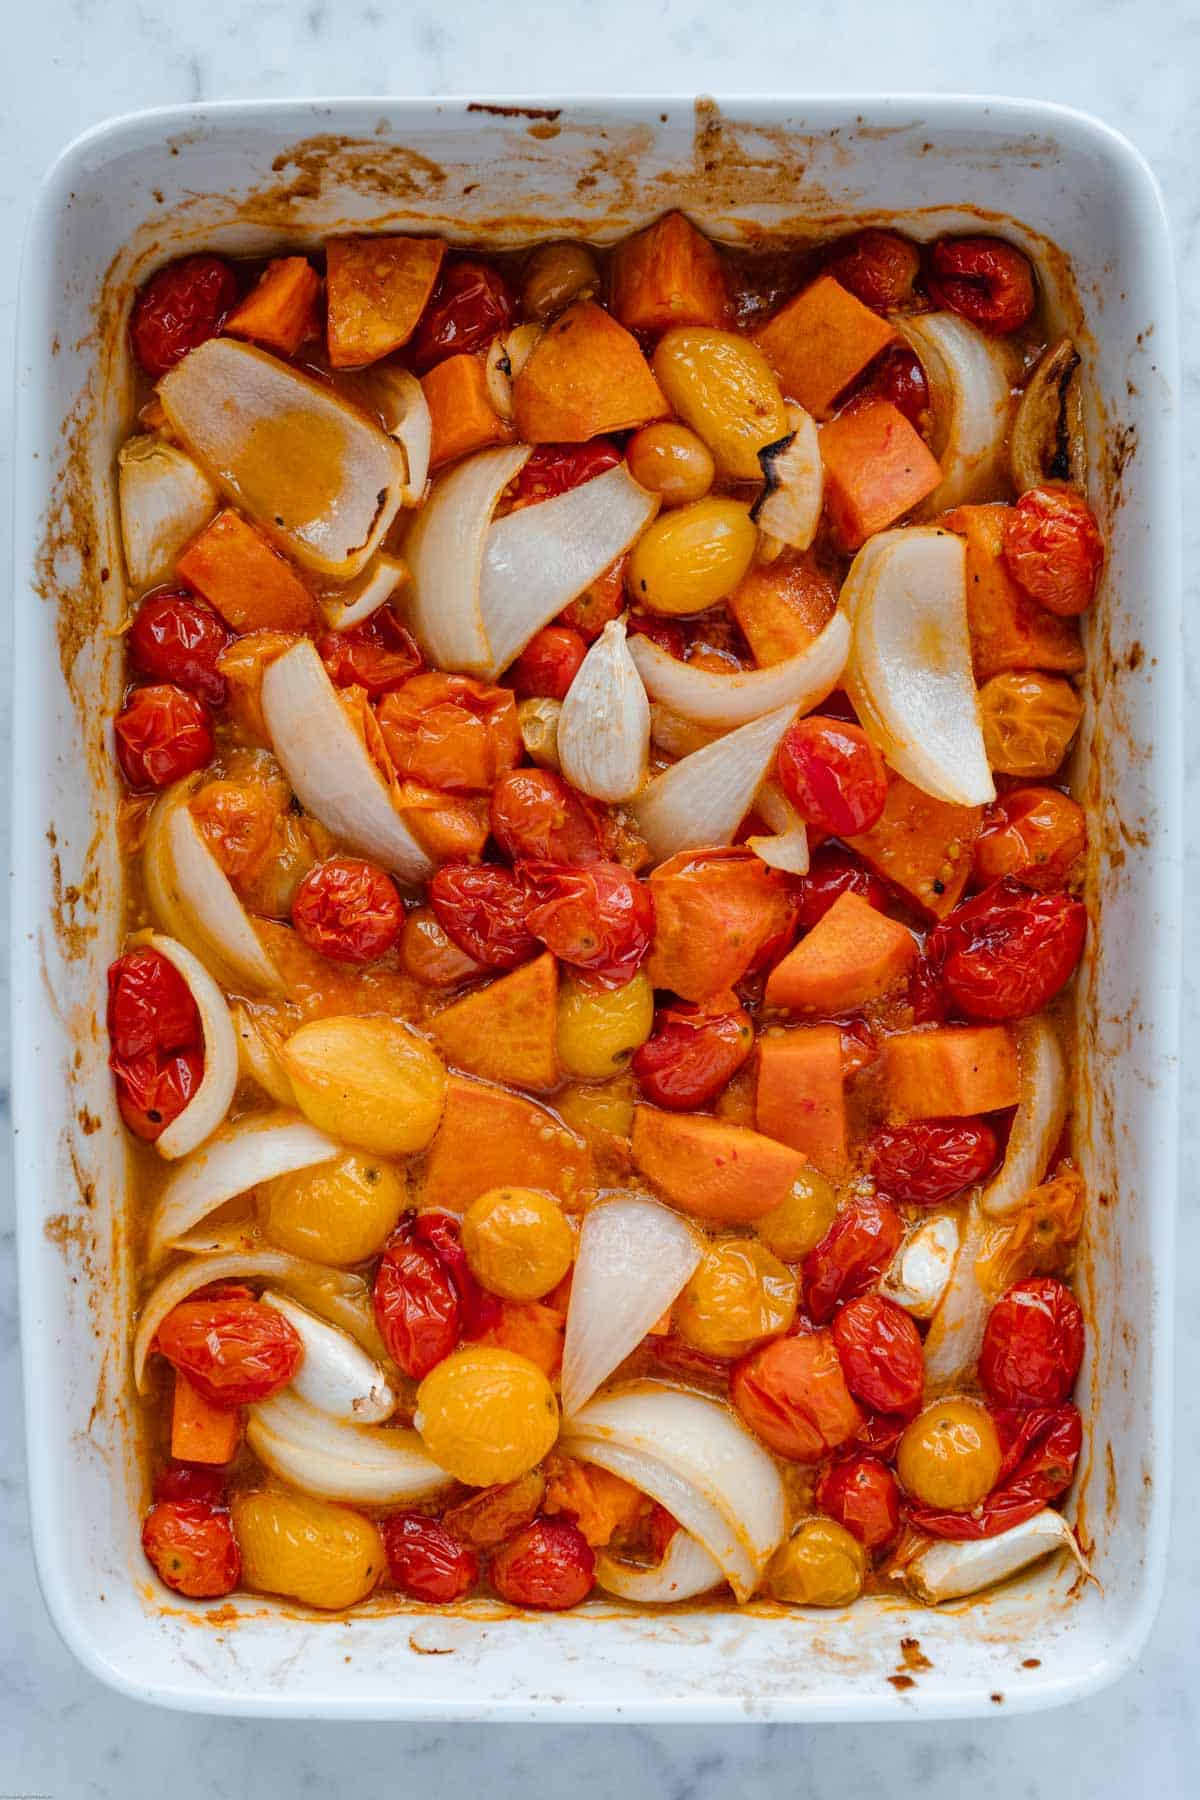 Roasted veggies for the sauce.